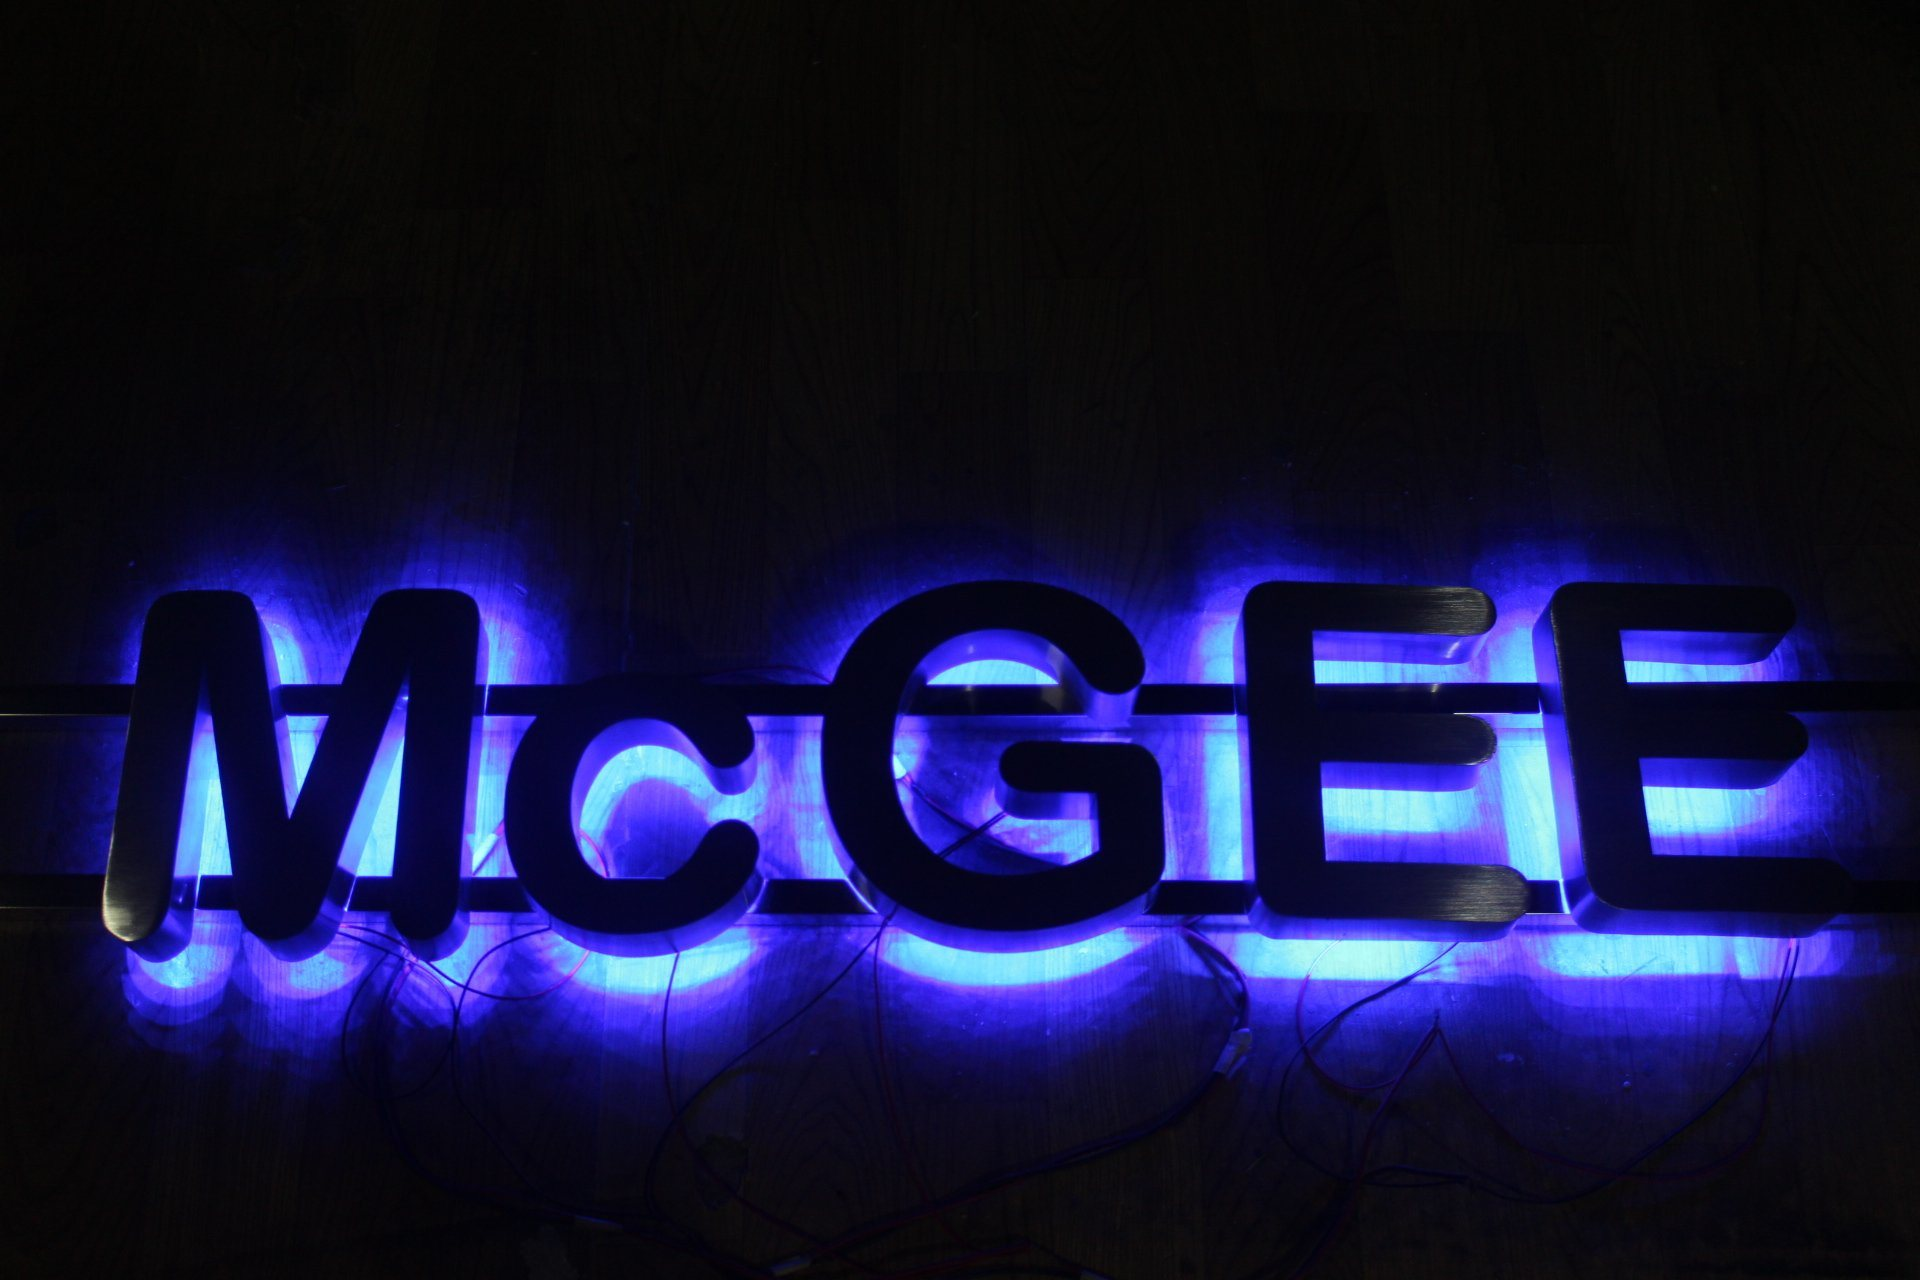 Metal Reverse Illuminated Sign for Advertising